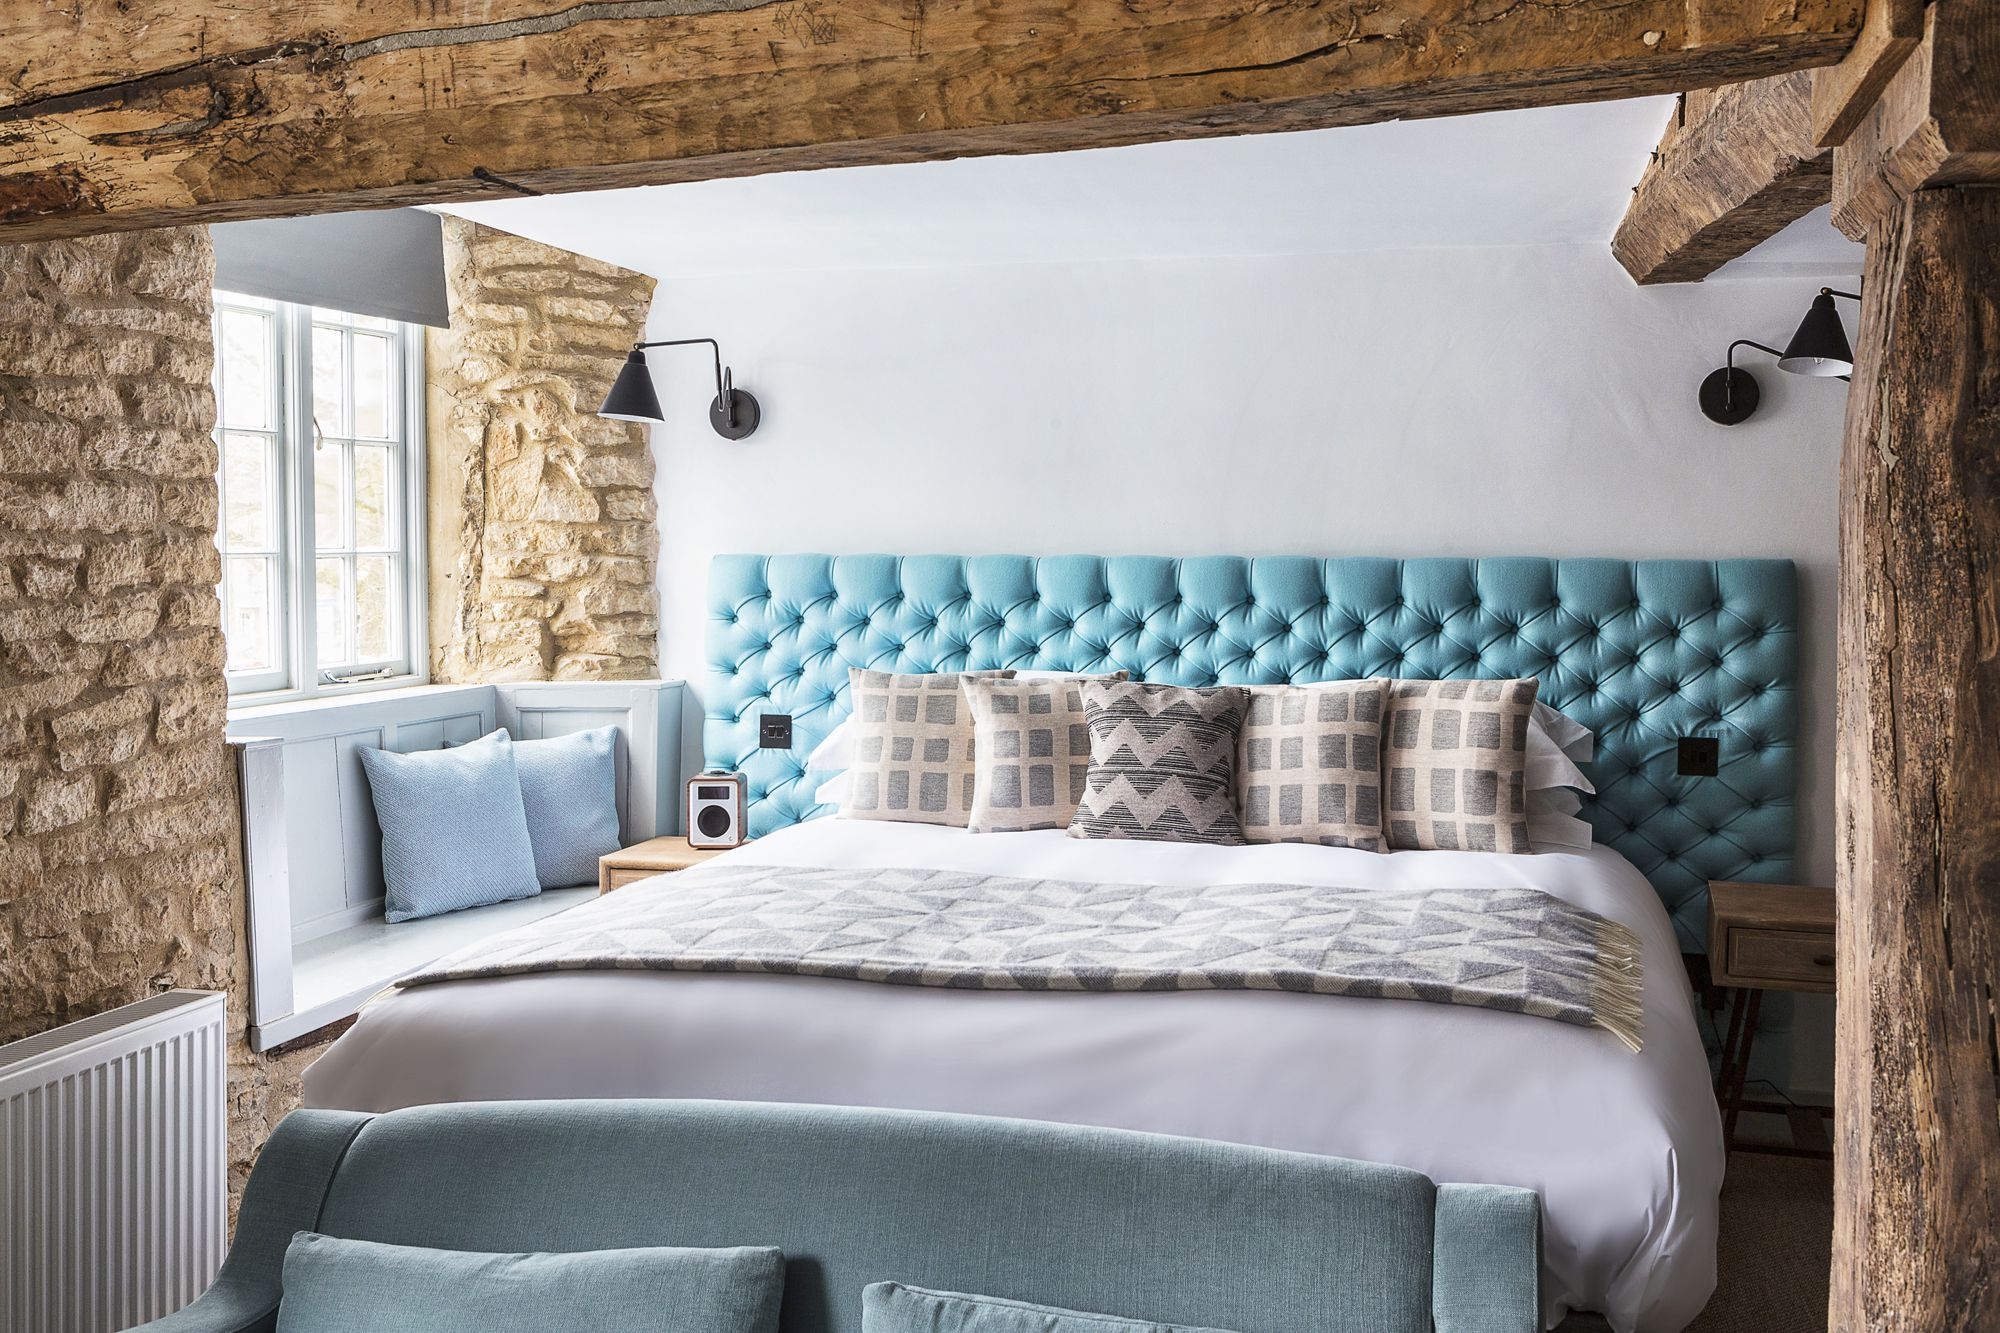 Hotels in South West England holidays at Cool Places